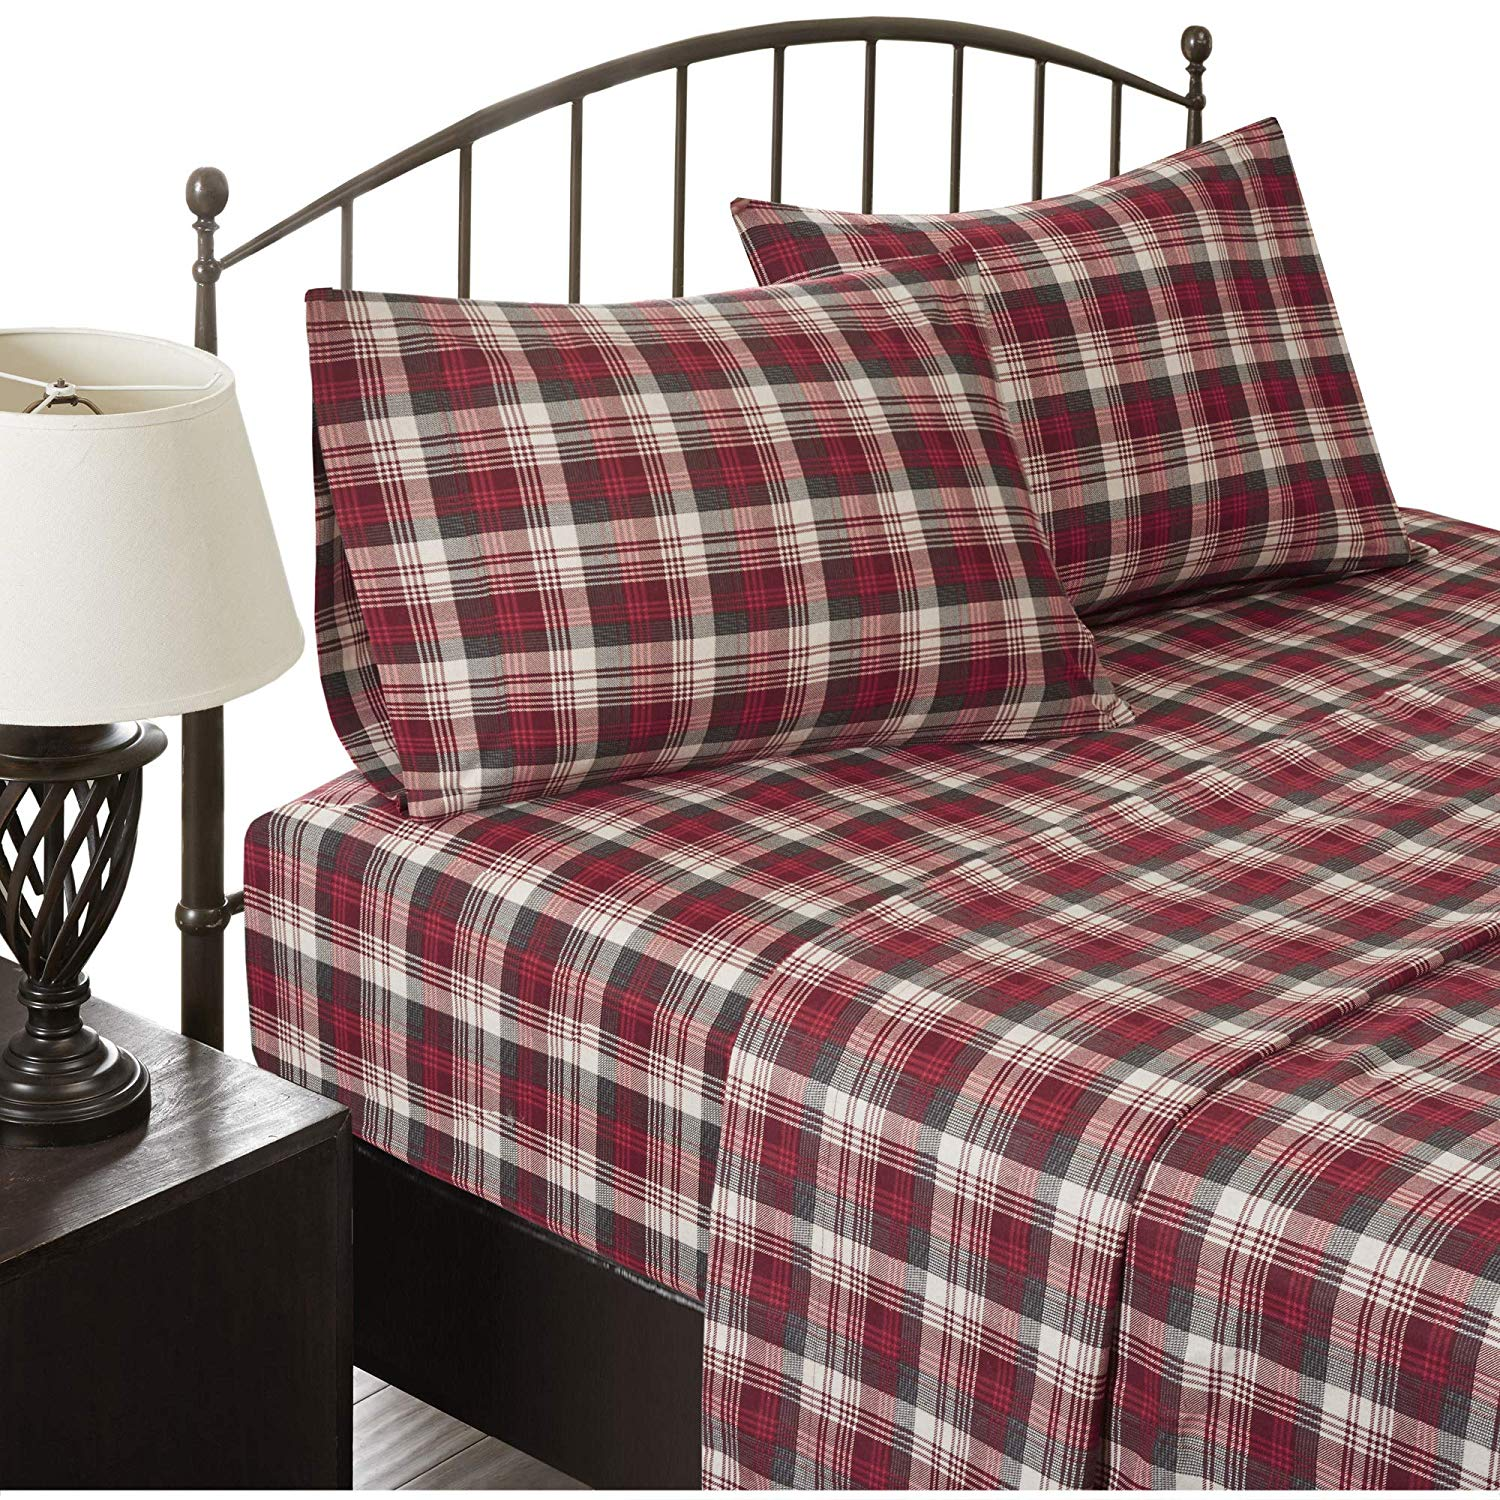 Cheap Red Plaid Flannel Sheets Find Red Plaid Flannel Sheets Deals On Line At Alibaba Com